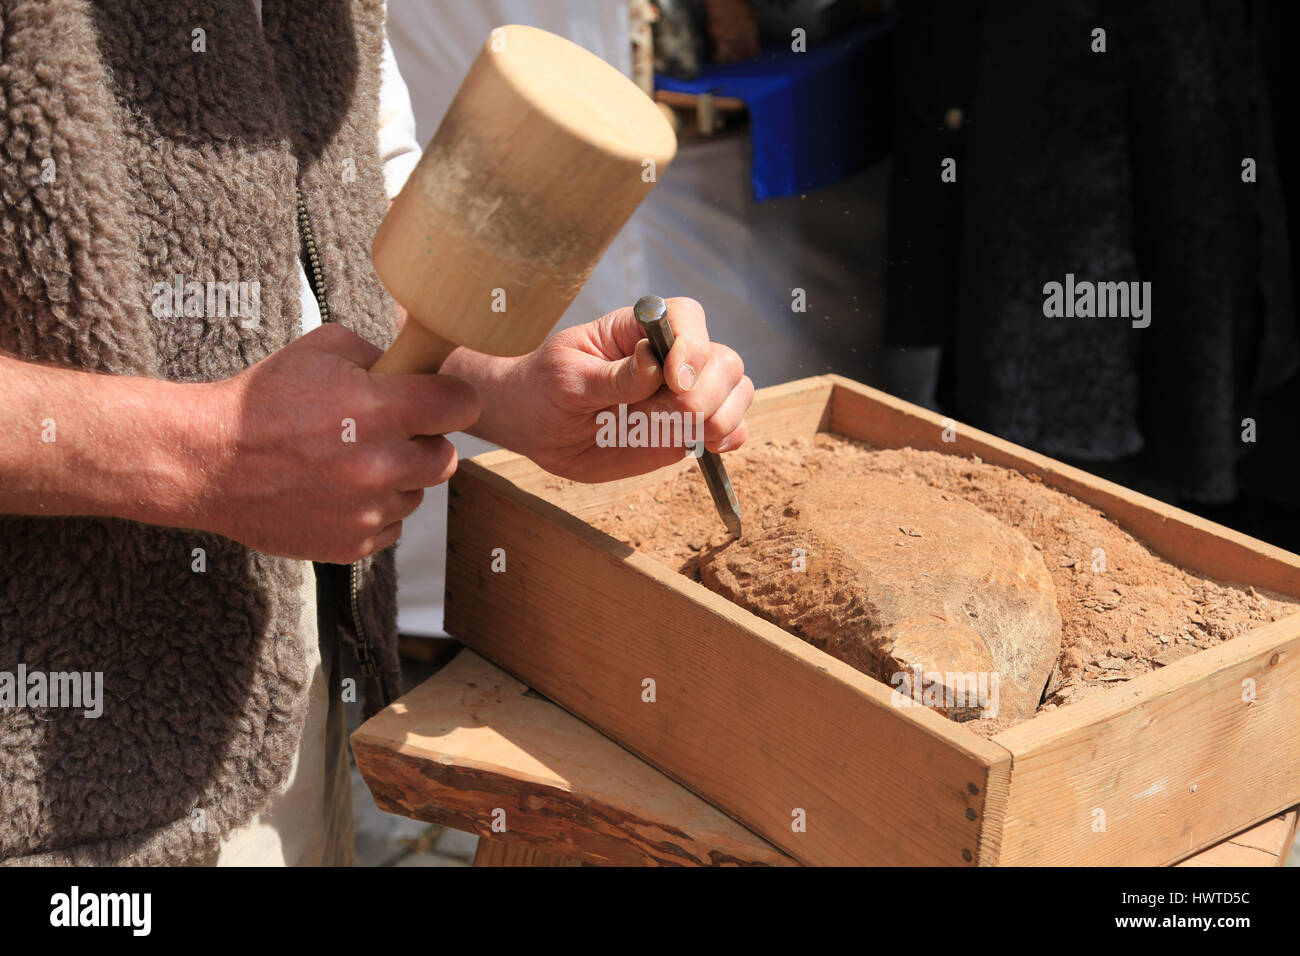 Hands of a stonemason with hammer and chisel at work - Stock Image